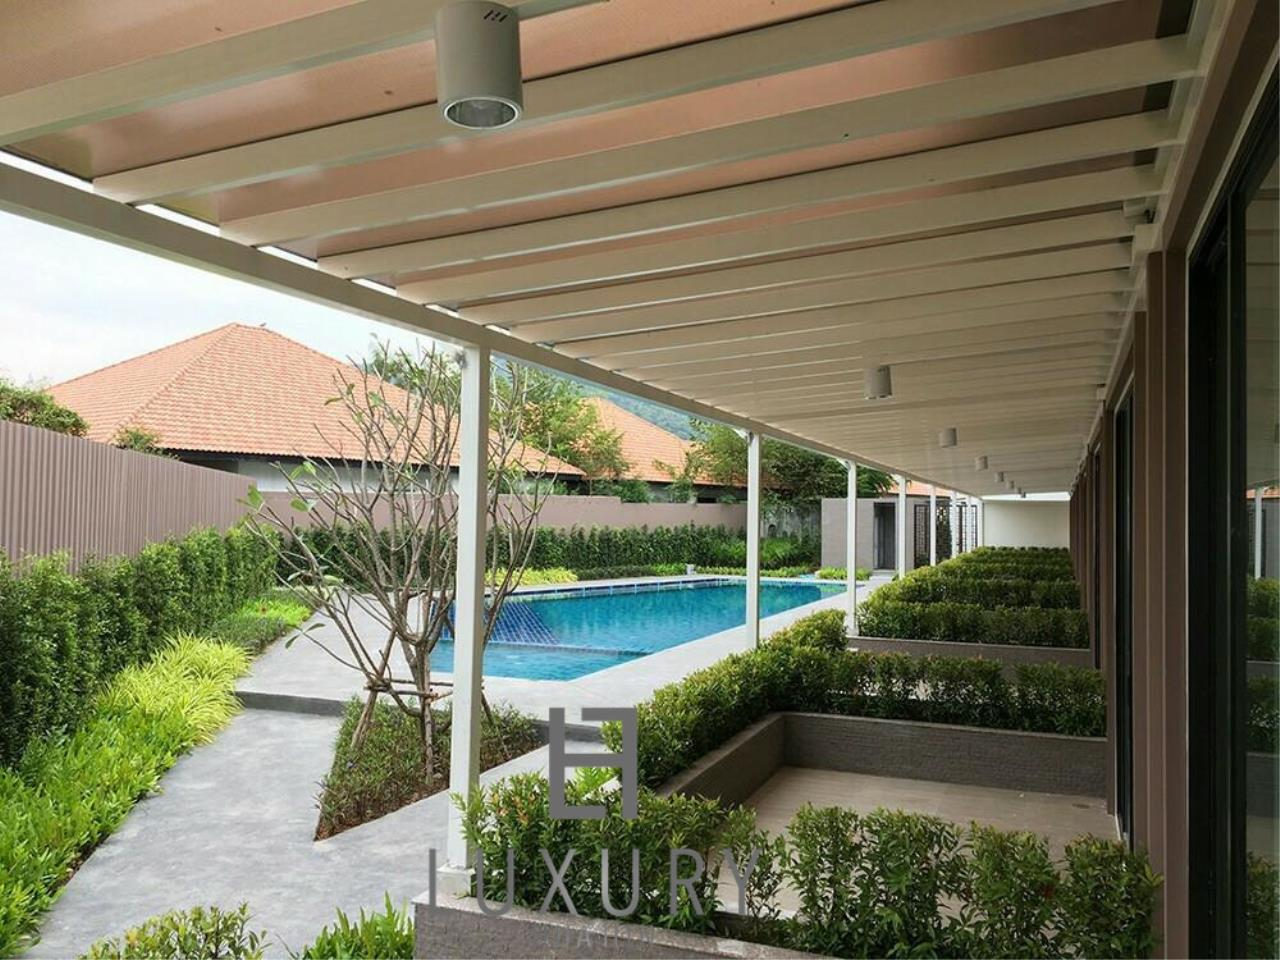 Luxury Hua Hin Property Agency's New Development - New Townhouses close to Hua Hin town centre 13